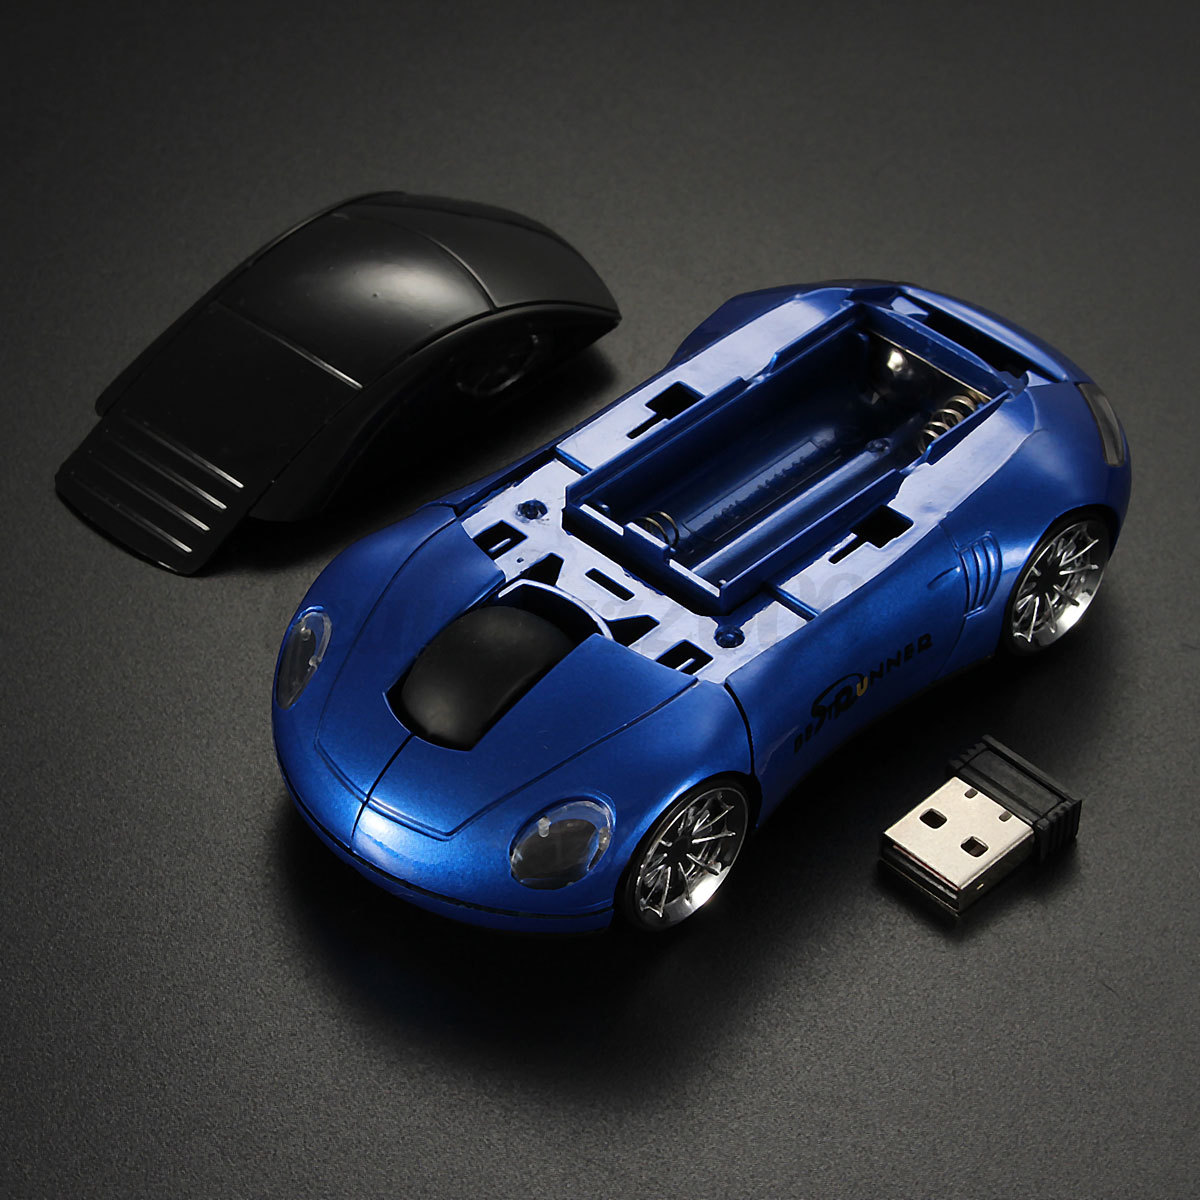 bestrunner souris sans fil optique car voiture 2 4g wireless mouse usb pc laptop ebay. Black Bedroom Furniture Sets. Home Design Ideas